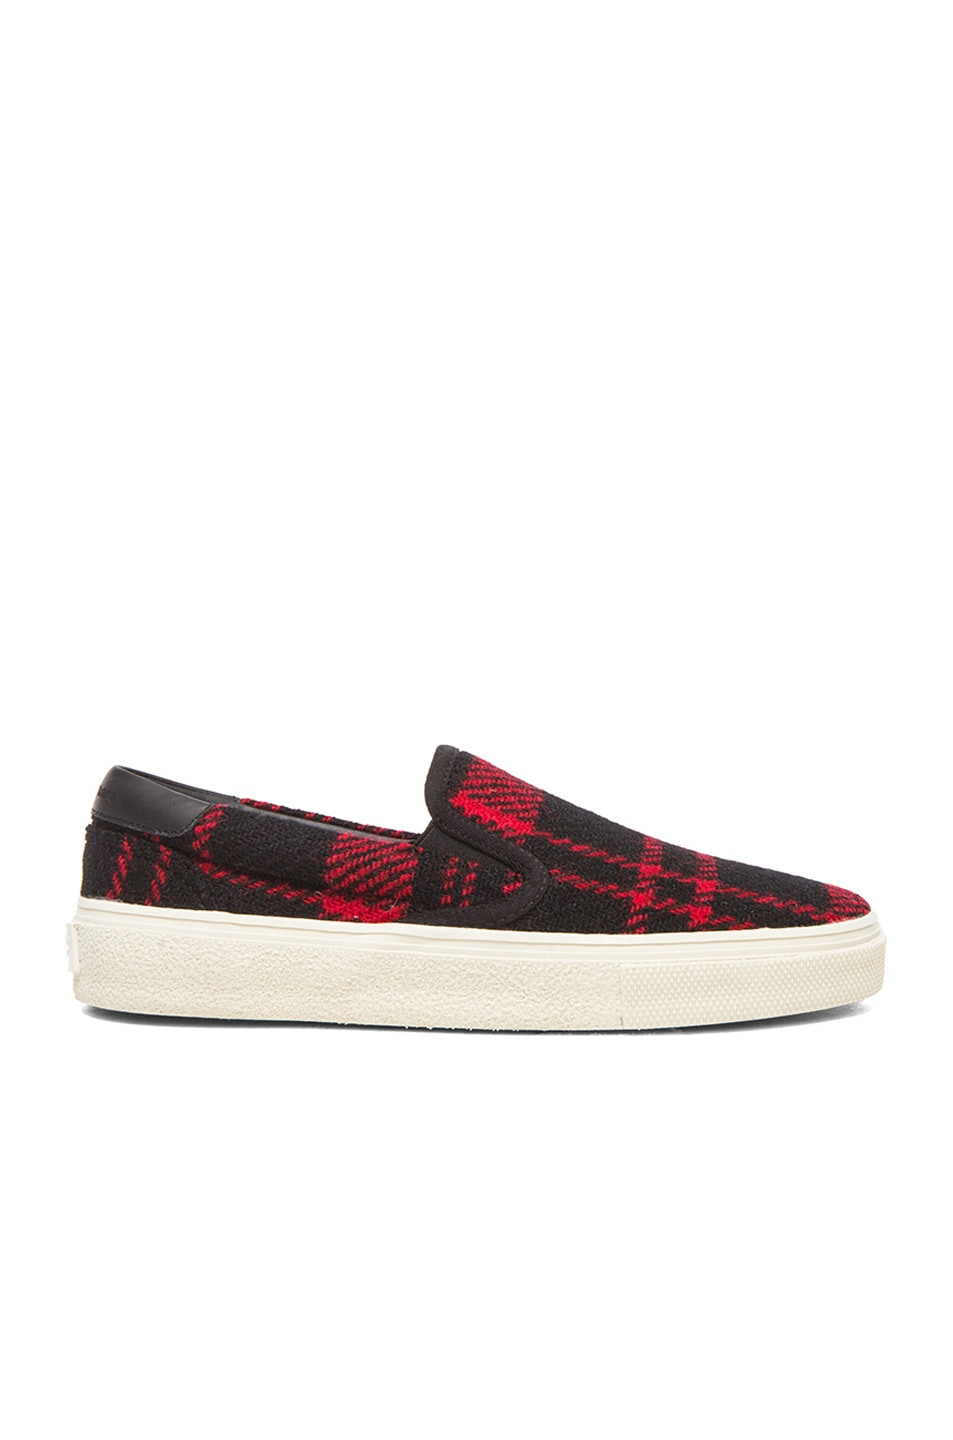 Image 1 of Saint Laurent Tweed Skate Slip-On Sneakers in Red & Black